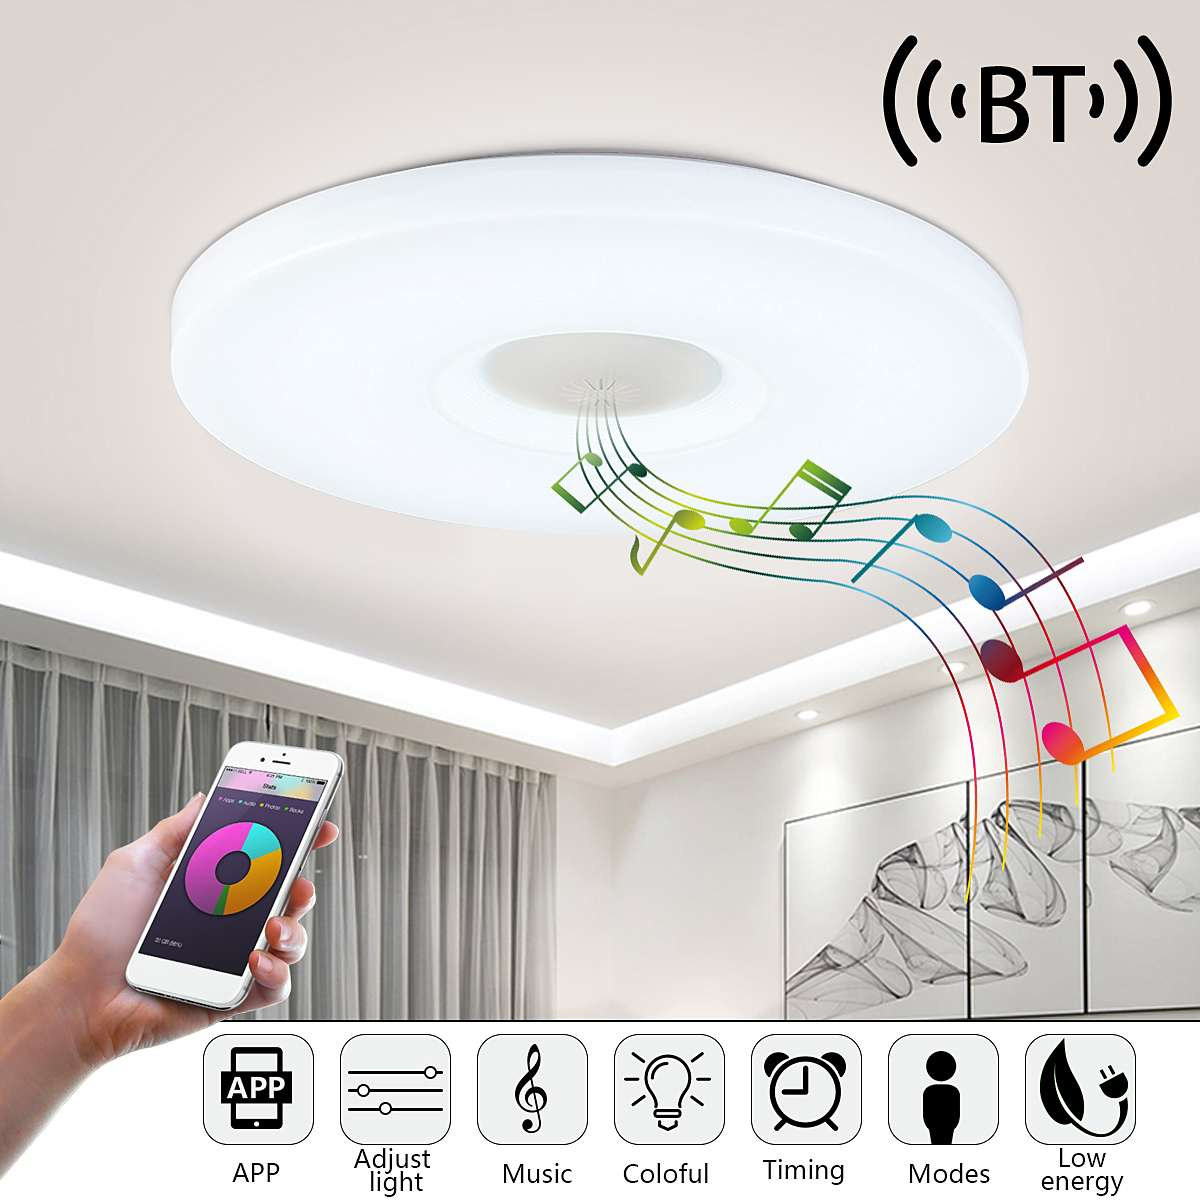 Home Lamp 24W/36W LED Music Ceiling Light  Dimmable APP Remote Control Colorful Ceiling Light  with a bluetooth speakerHome Lamp 24W/36W LED Music Ceiling Light  Dimmable APP Remote Control Colorful Ceiling Light  with a bluetooth speaker